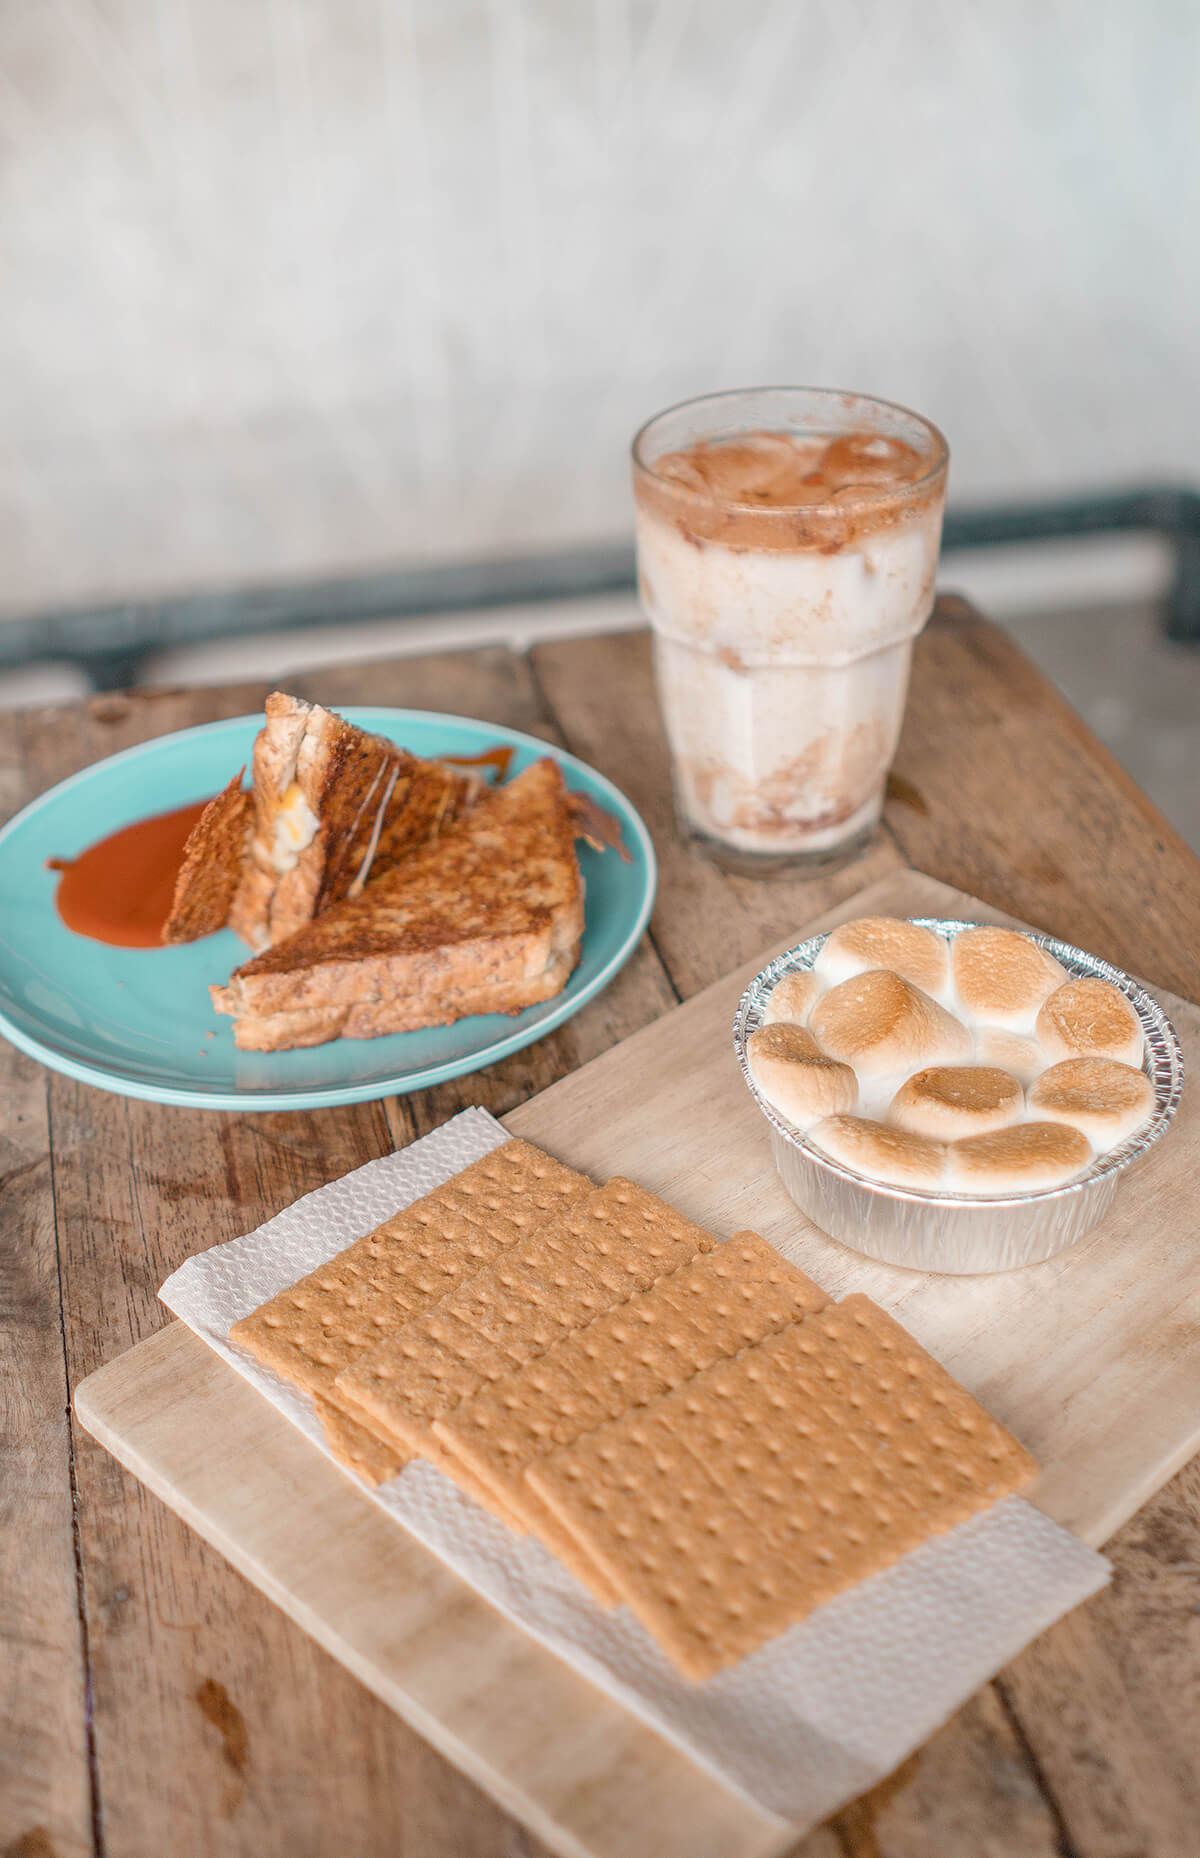 El Union Coffee La Union S'mores